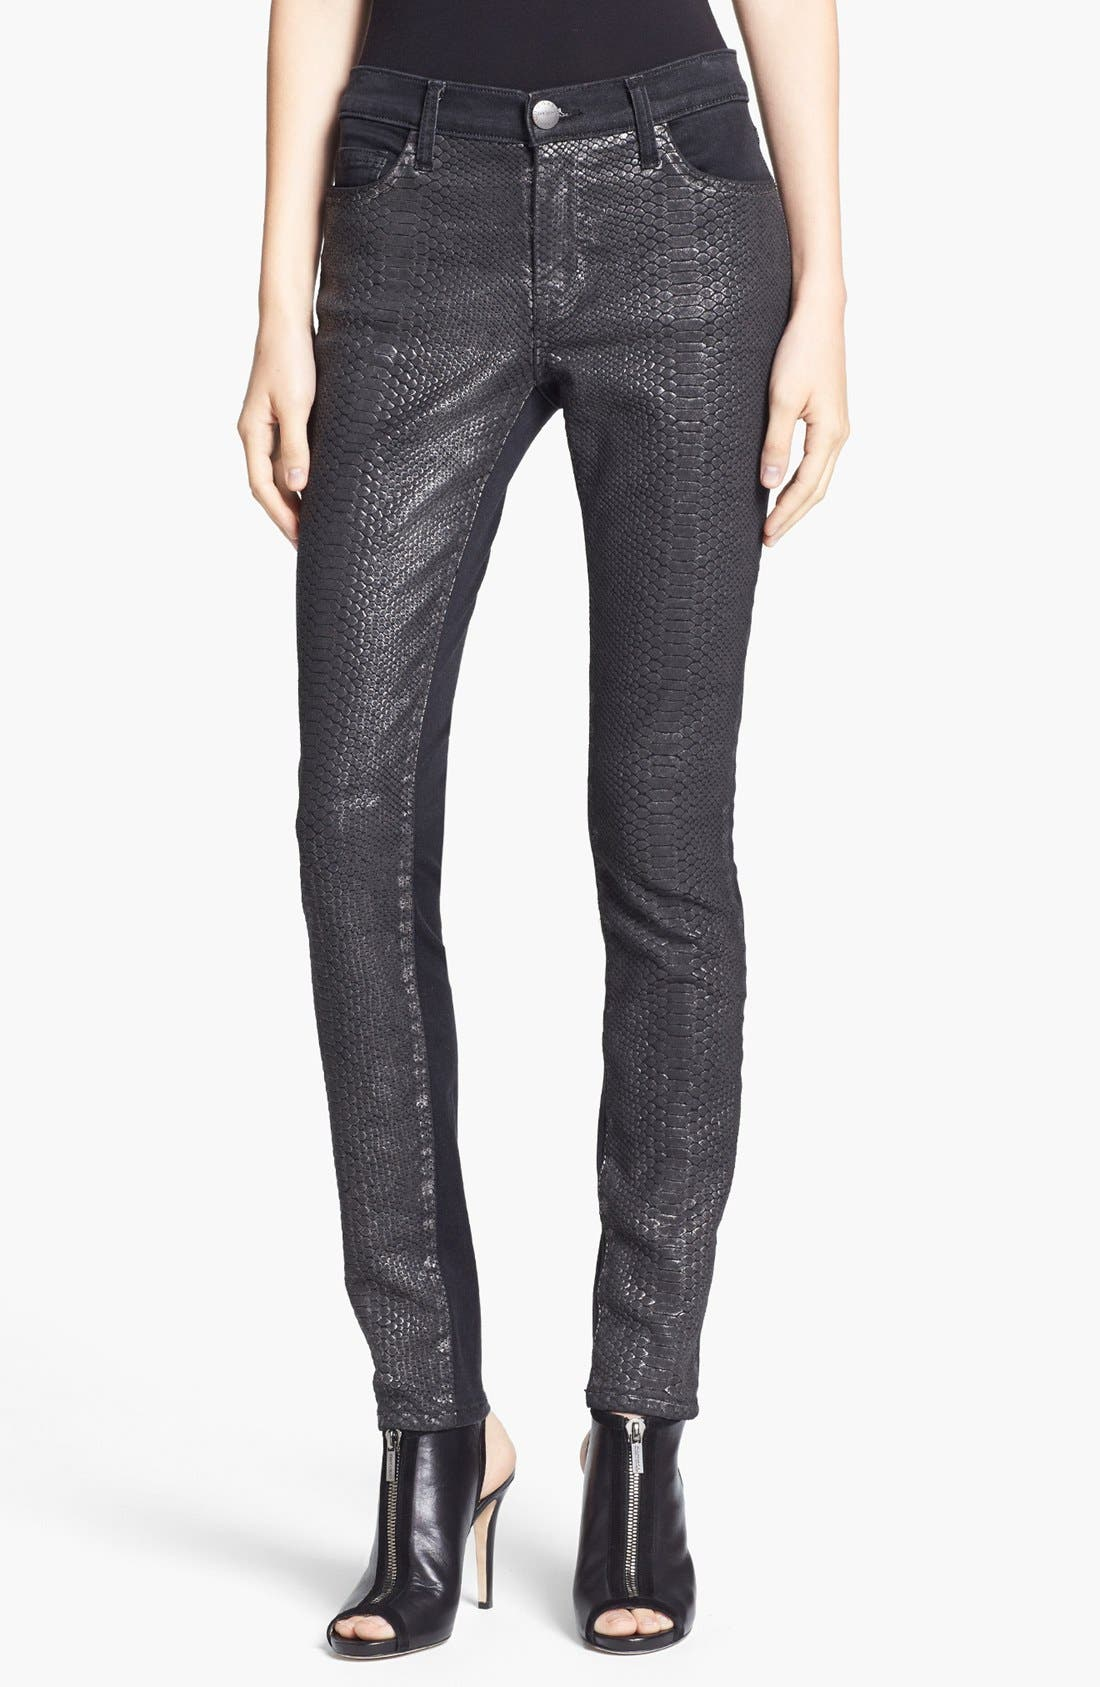 Alternate Image 1 Selected - Current/Elliott 'The Ankle Skinny' Coated Animal Print Jeans